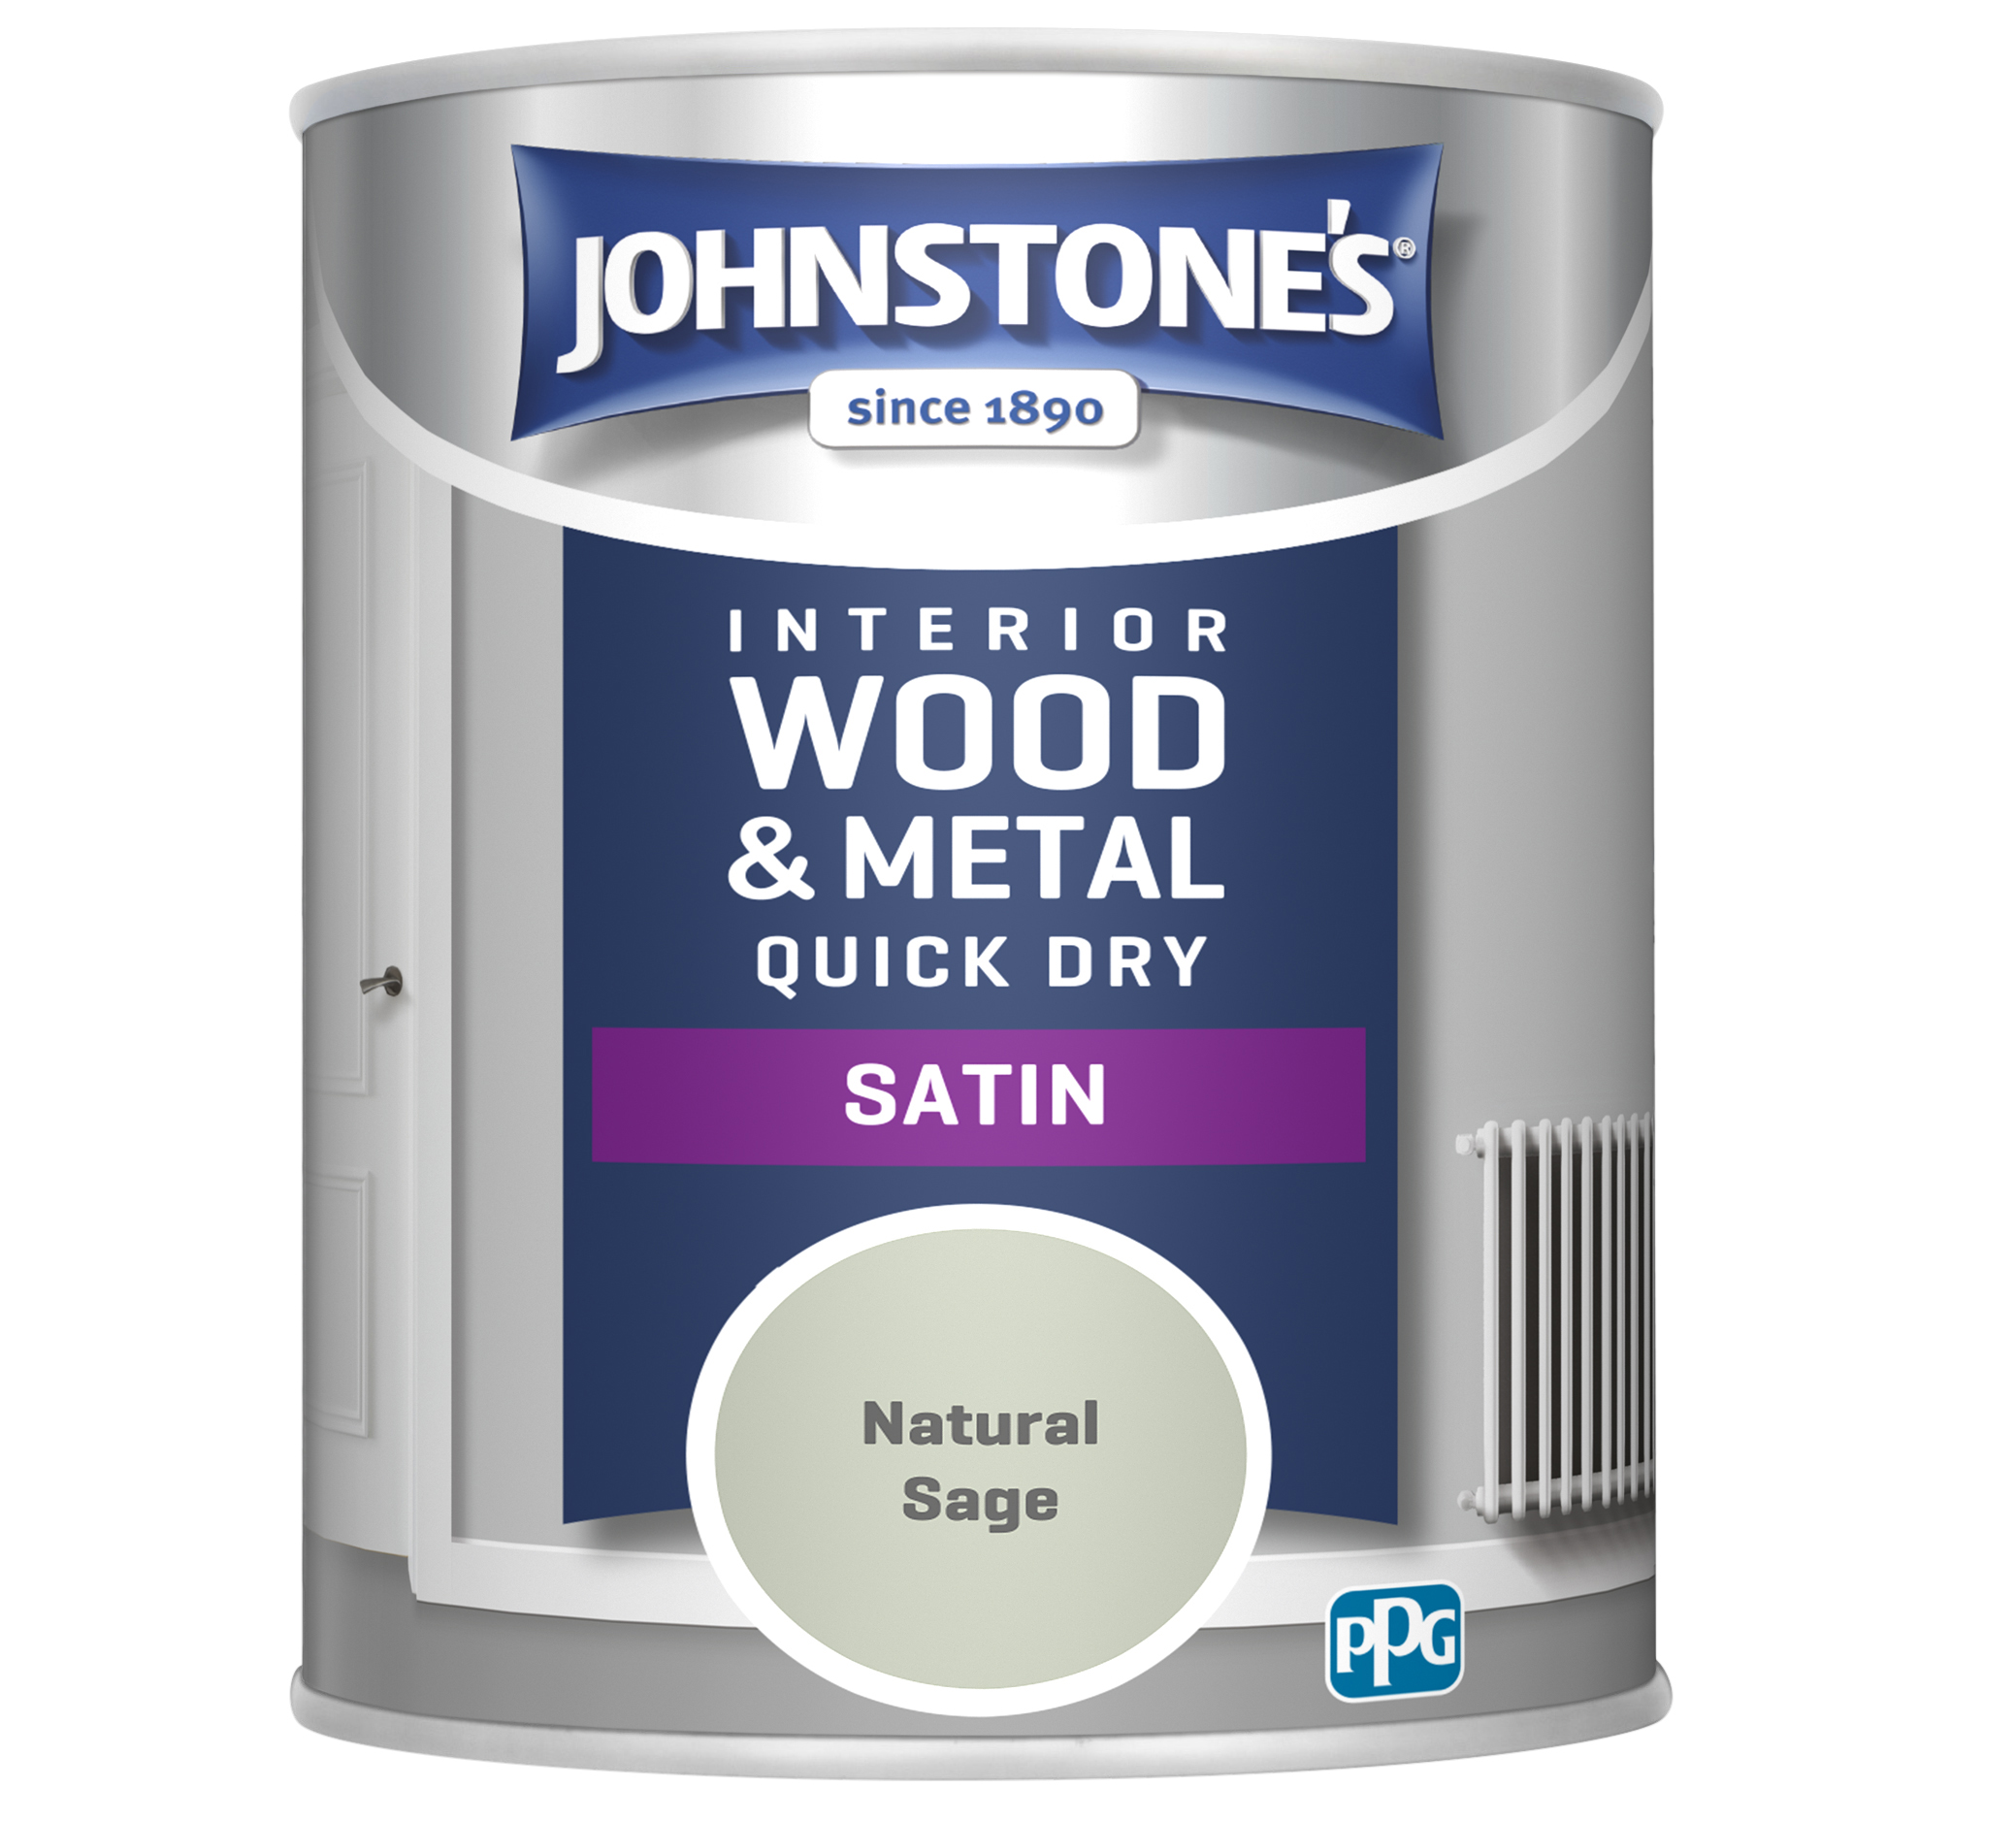 Johnstones 750ml Quick Dry Satin Paint - Natural Sage